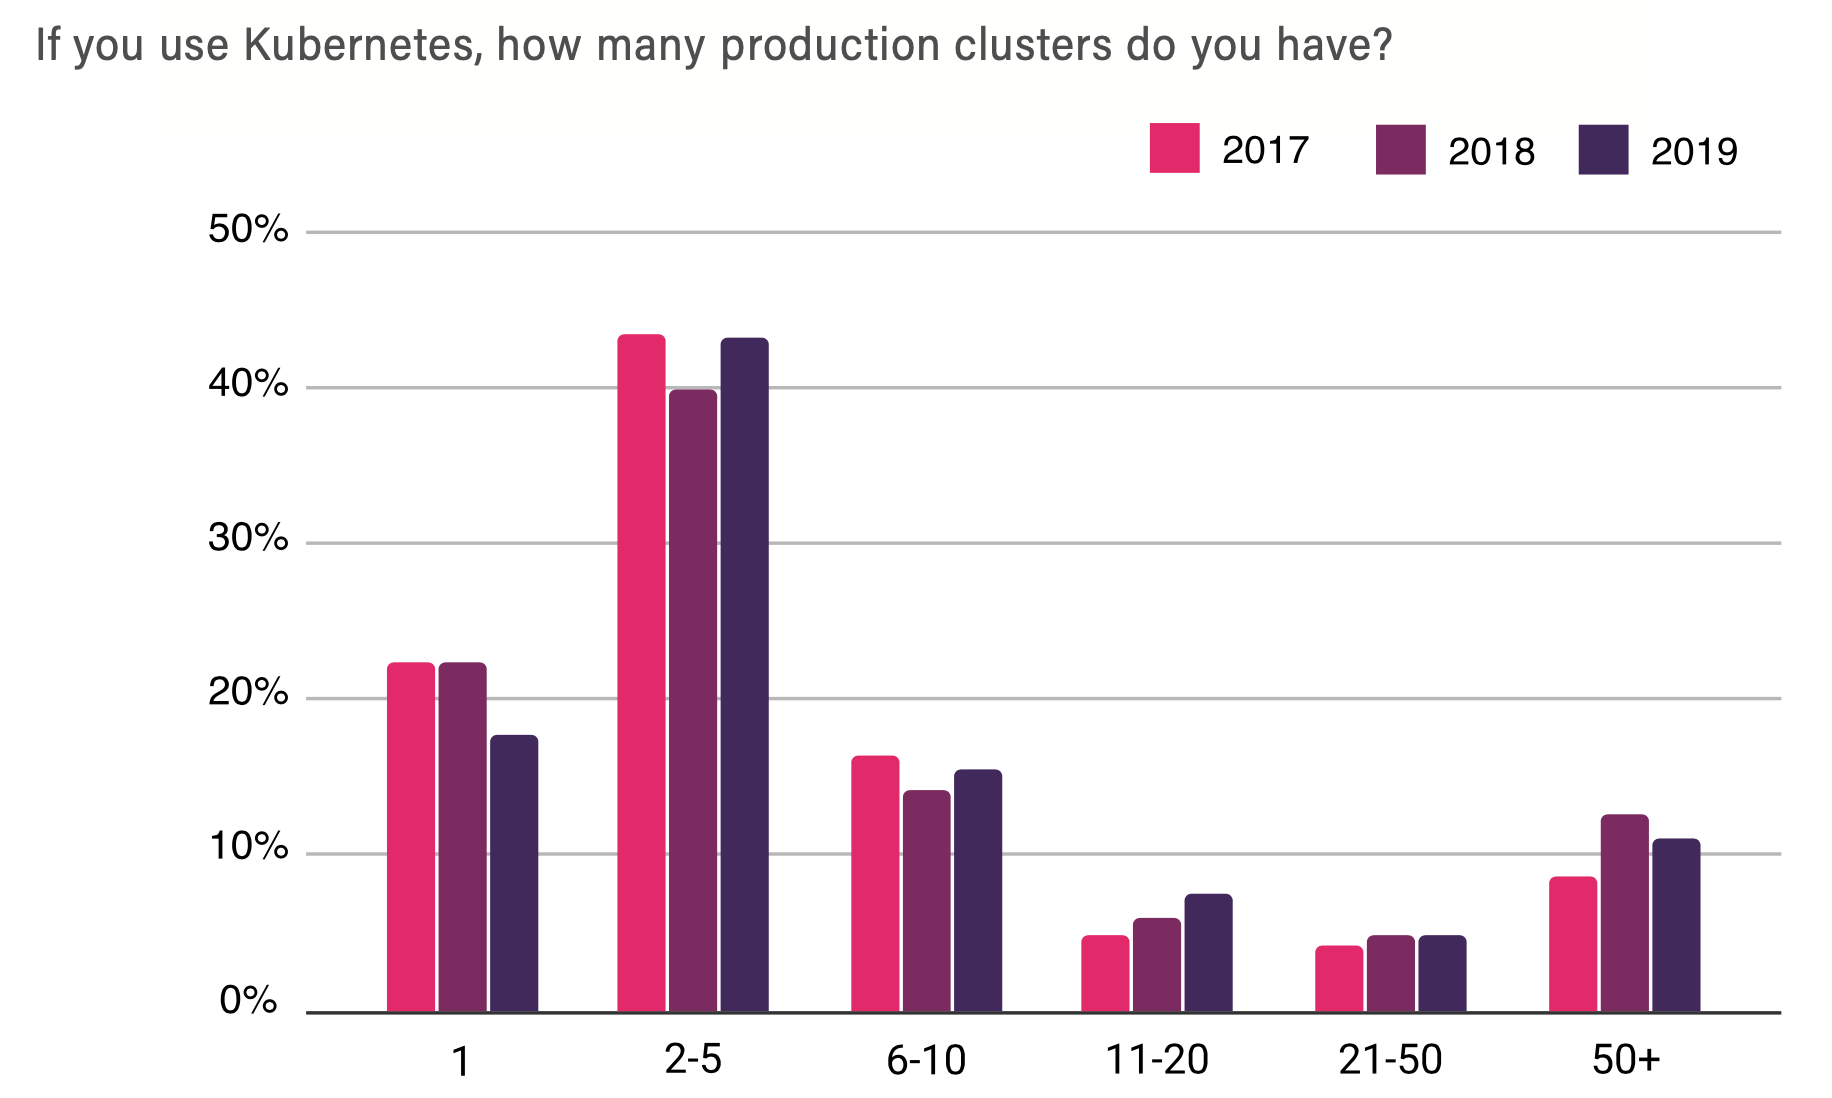 # of clusters in production